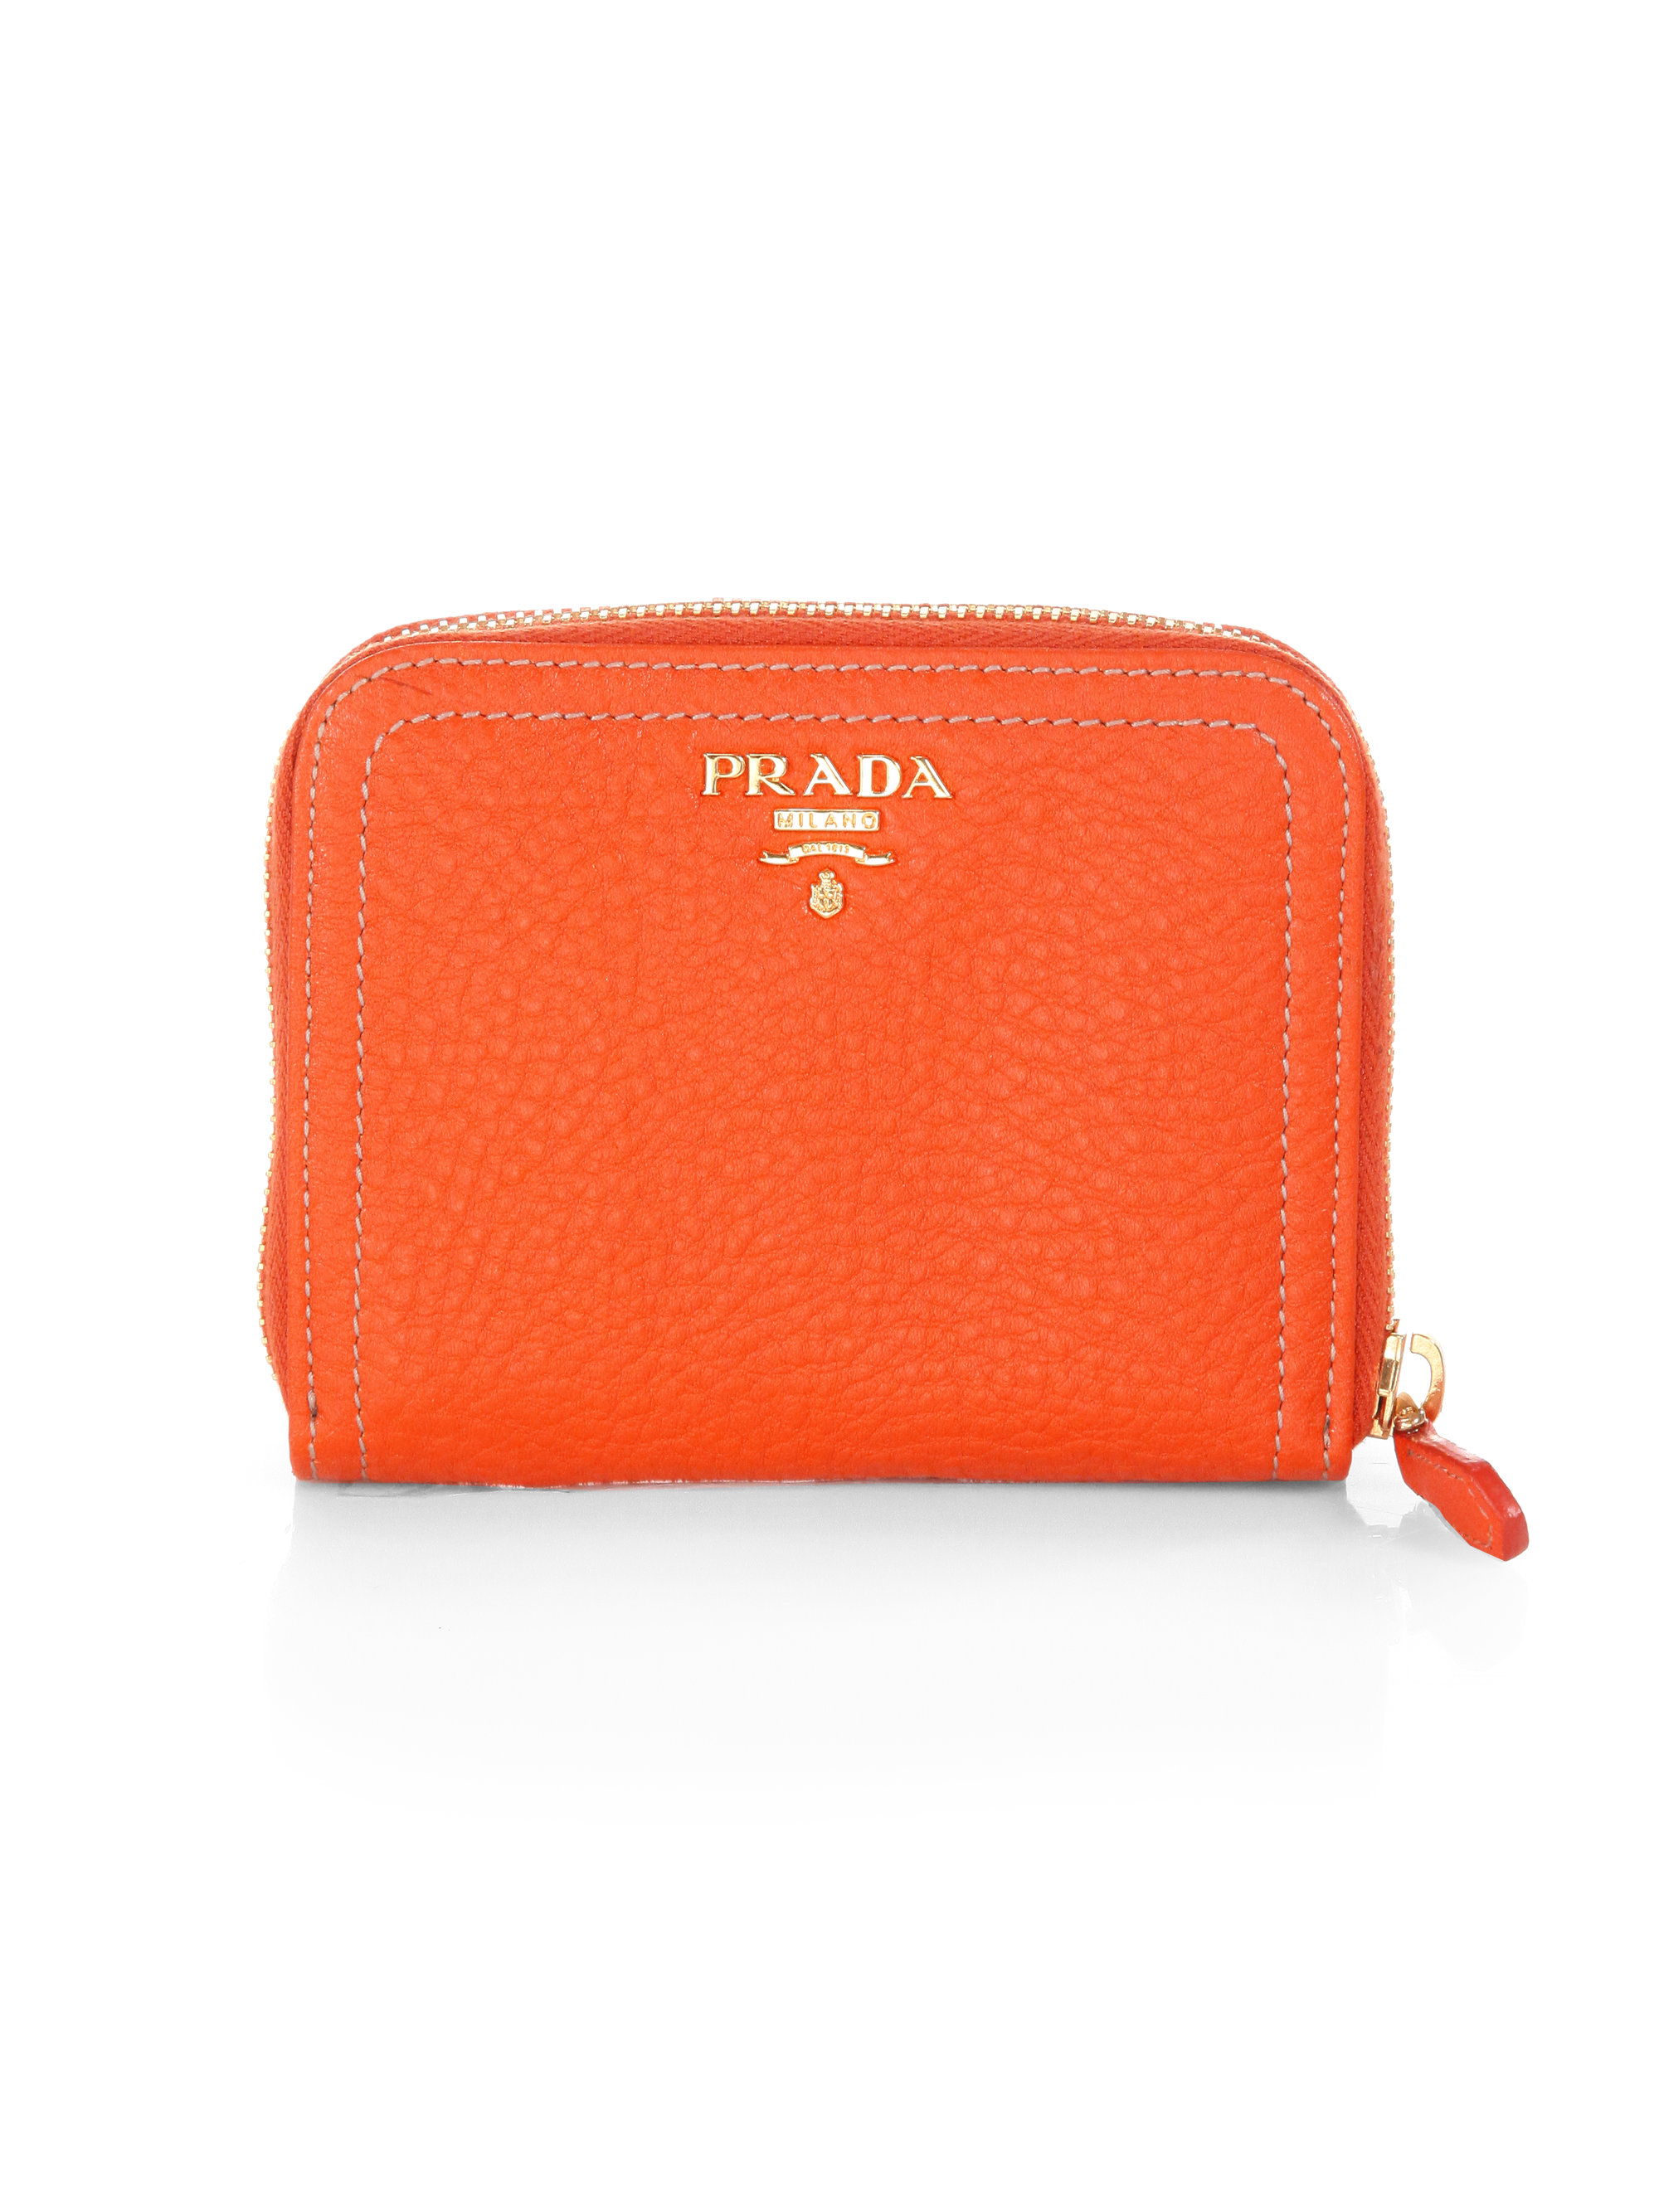 61874b6606 ... wholesale lyst prada daino small zip around leather wallet in orange  4a0e1 e0313